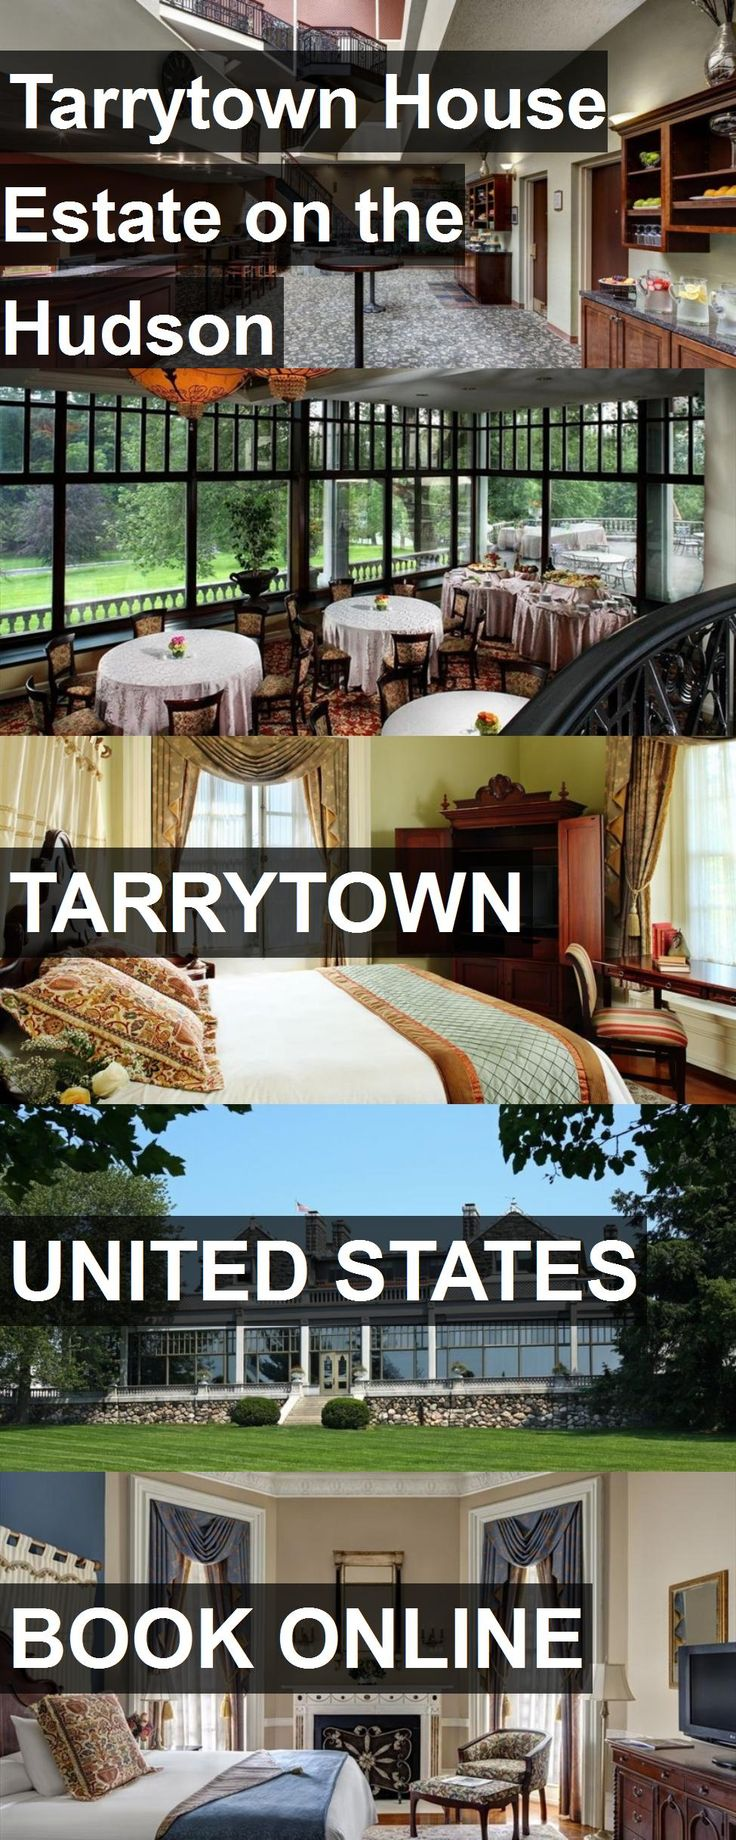 Hotel Tarrytown House Estate on the Hudson in Tarrytown, United States. For more information, photos, reviews and best prices please follow the link. #UnitedStates #Tarrytown #travel #vacation #hotel